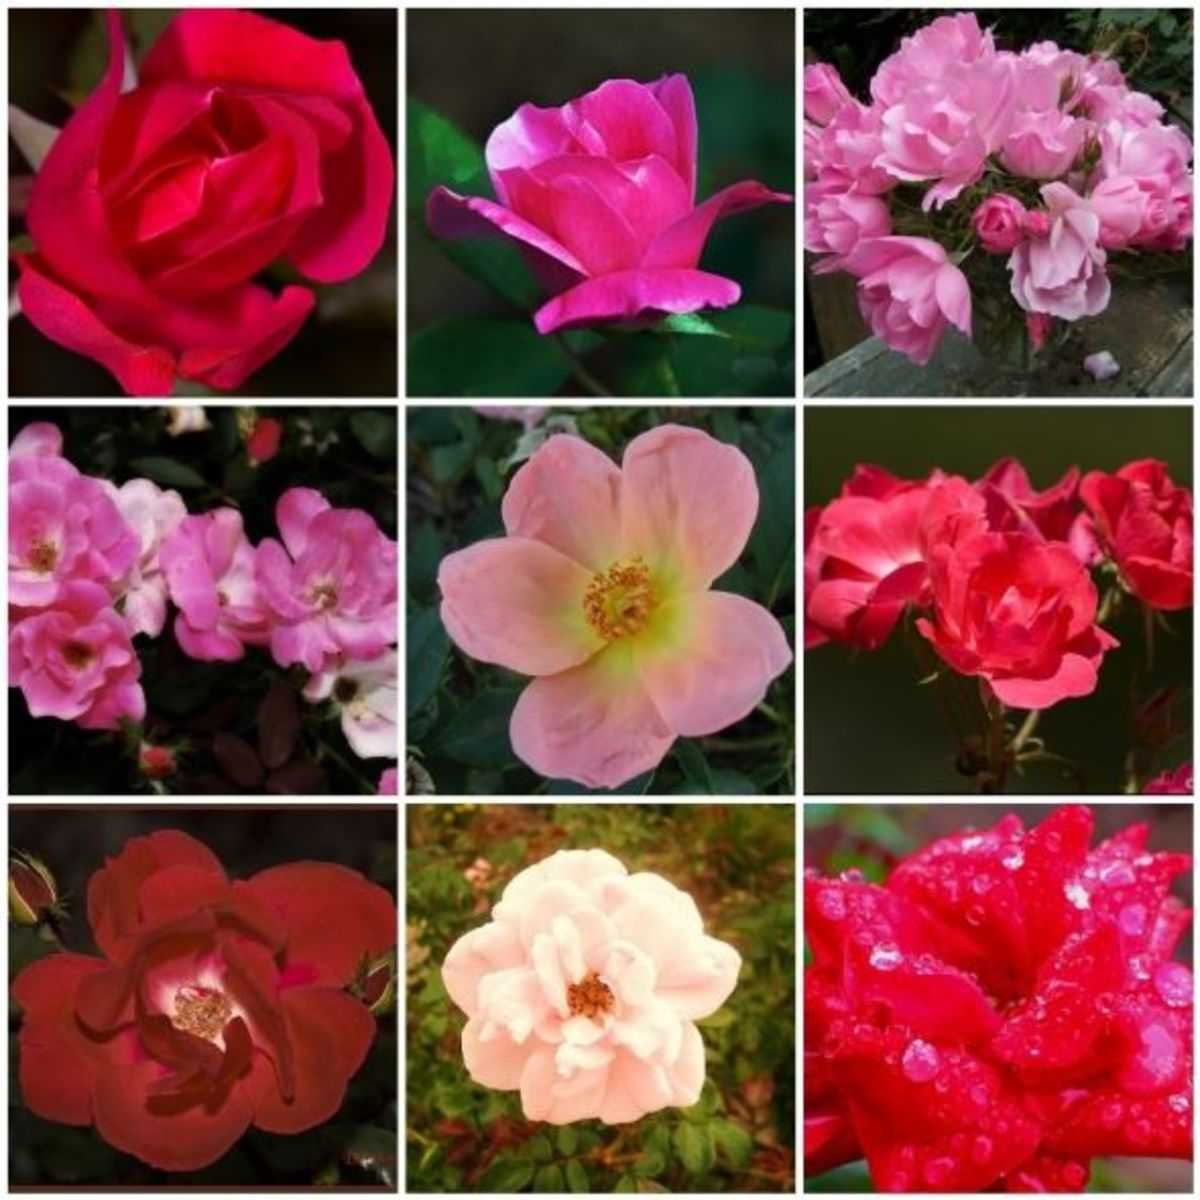 The Knock-Out Rose is easy to care for and blooms from early summer to late fall.